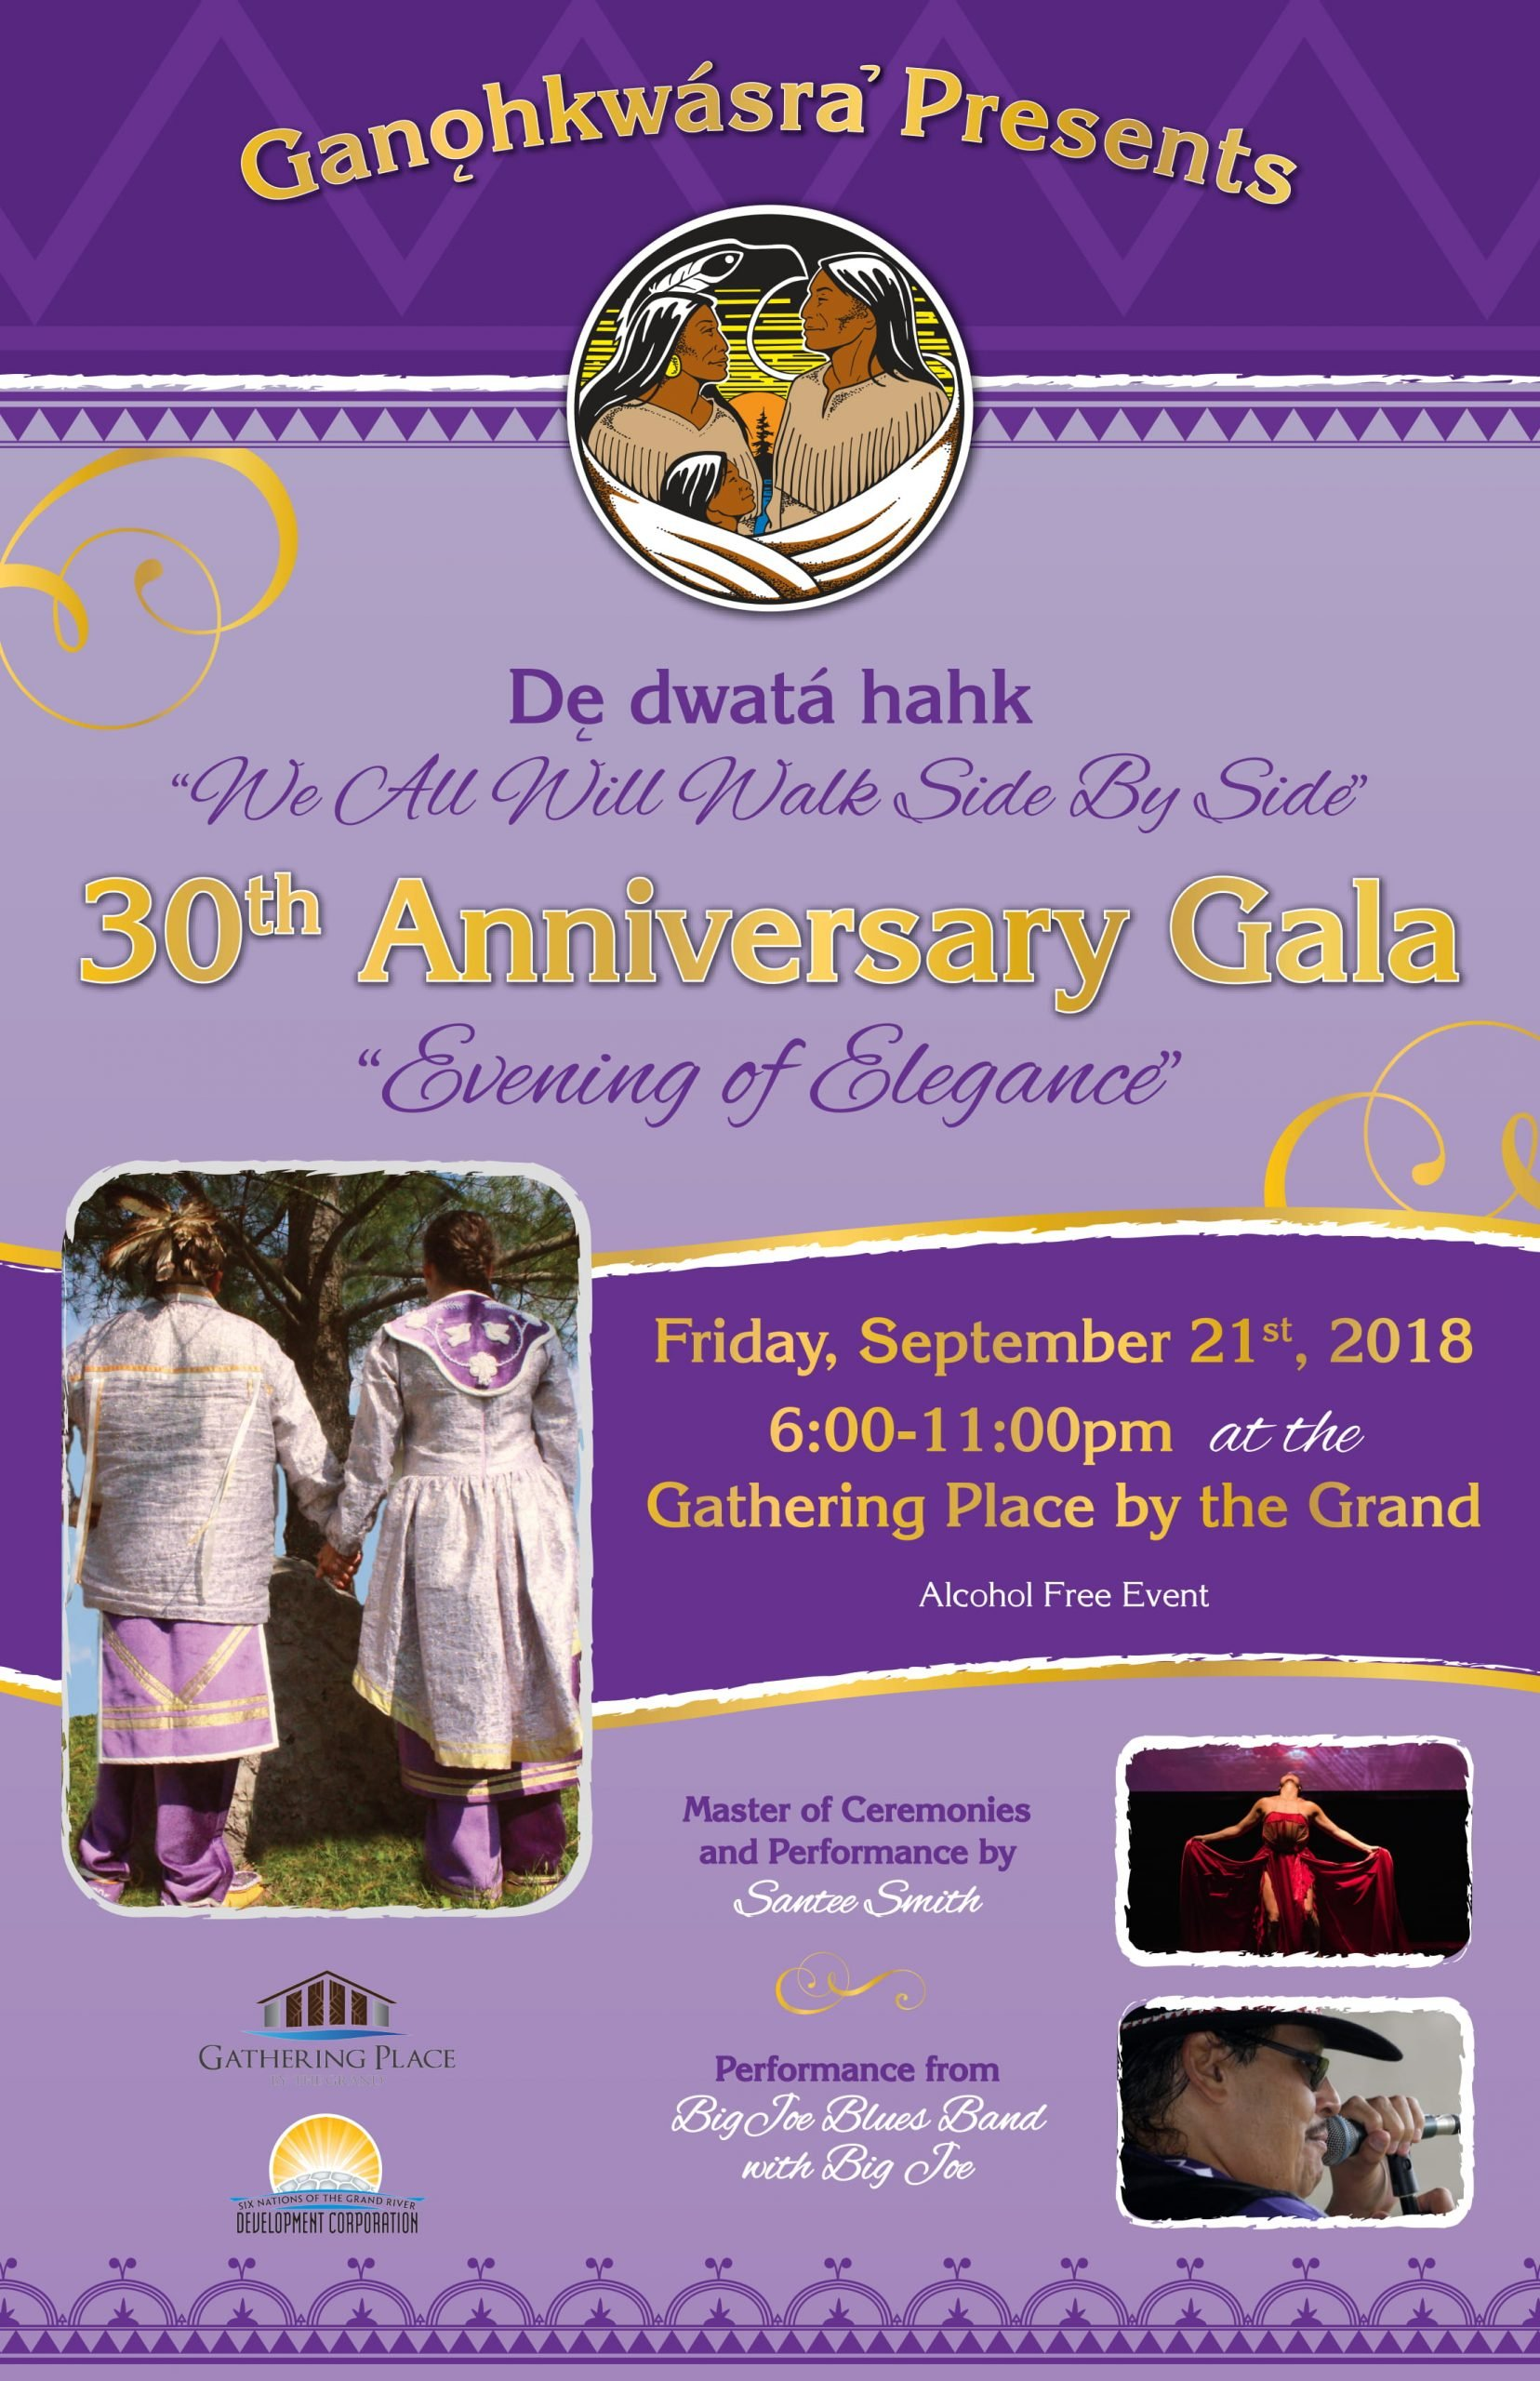 Ganohkwasra Presents 30th Anniversary Gala